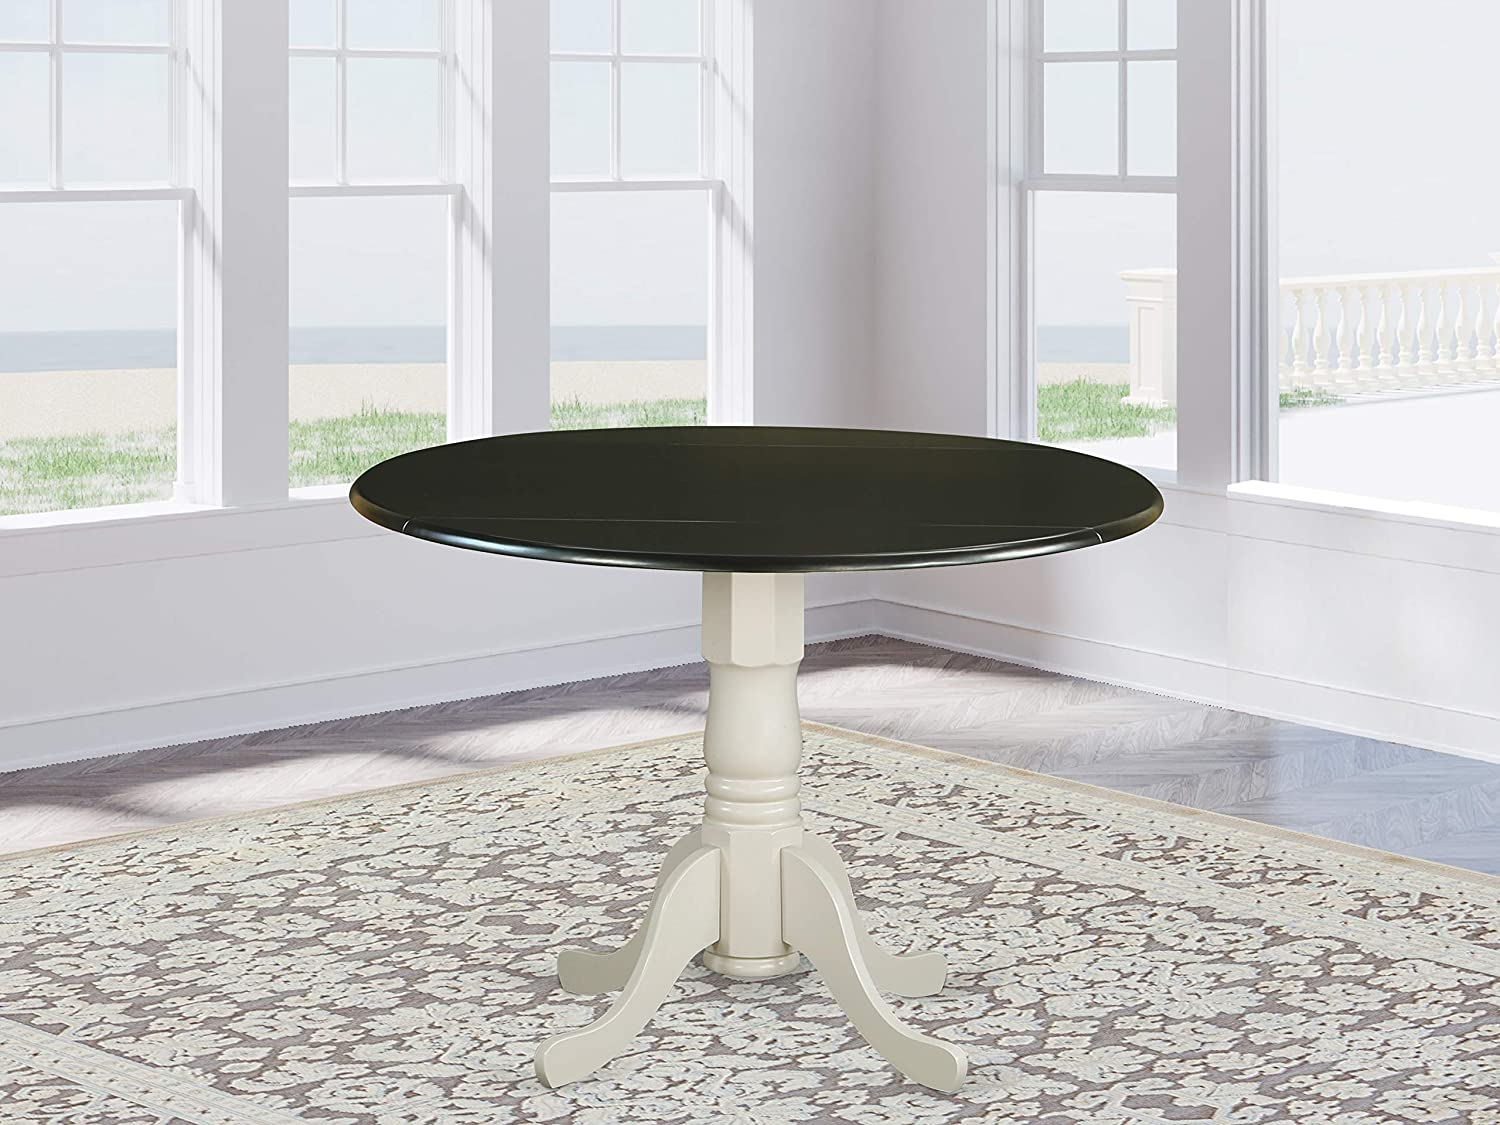 "East West Furniture DLT-BLW-TP Dublin Round Table with Two 9"" Drop Leaves - Black and Linen White Finish, Black & Linen"